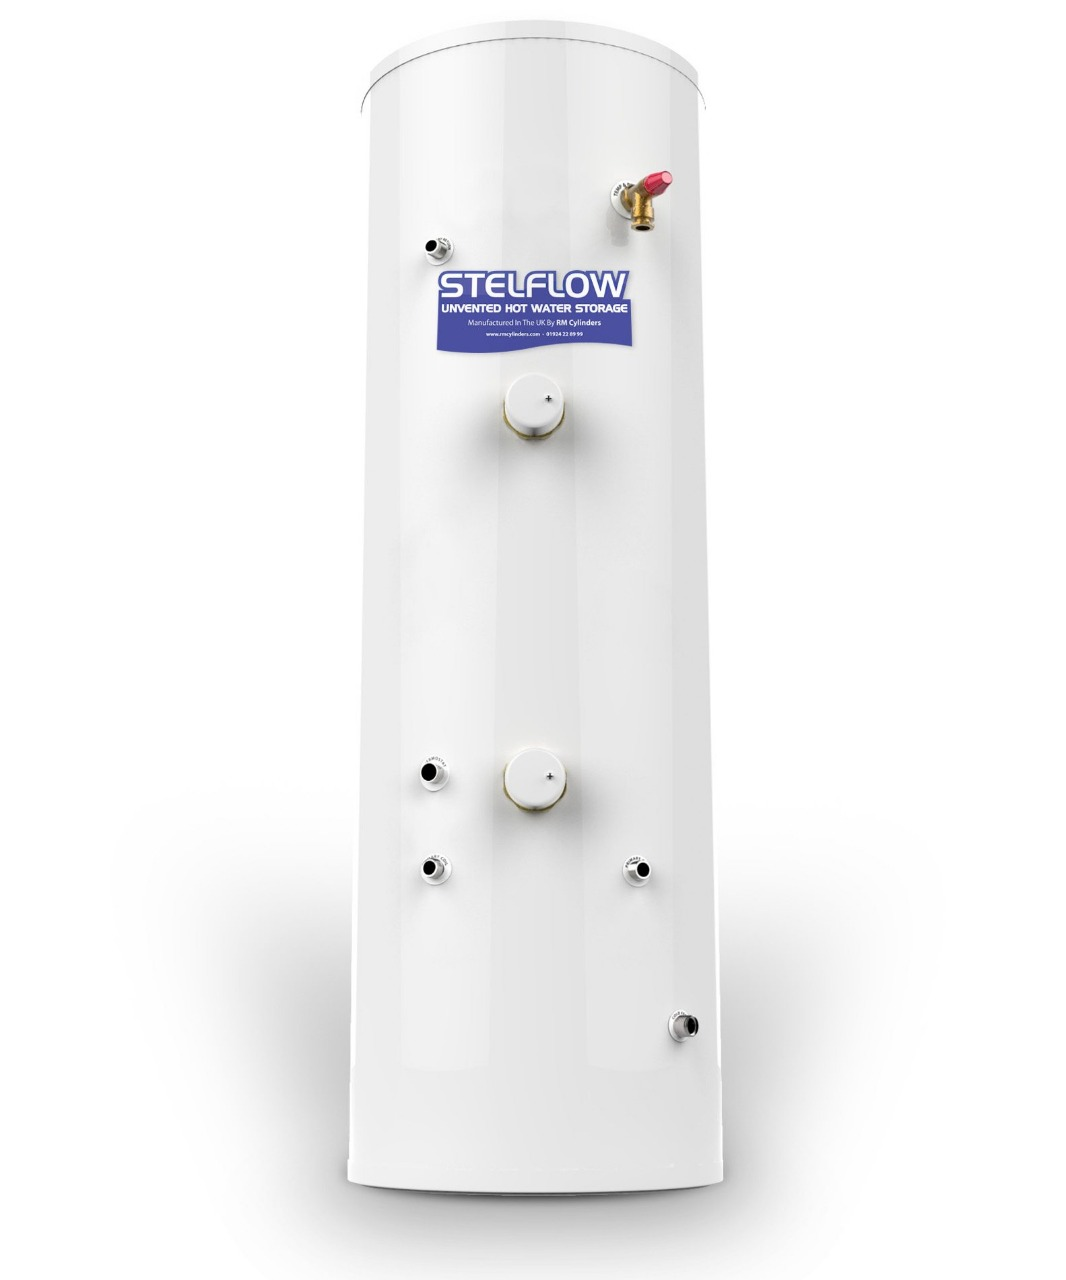 https://www.mepstock.co.uk/admin/images/Stelflow (RM) 180 L Direct Slimline Unvented Cylinder -  MEP Stock Ltd.jpeg